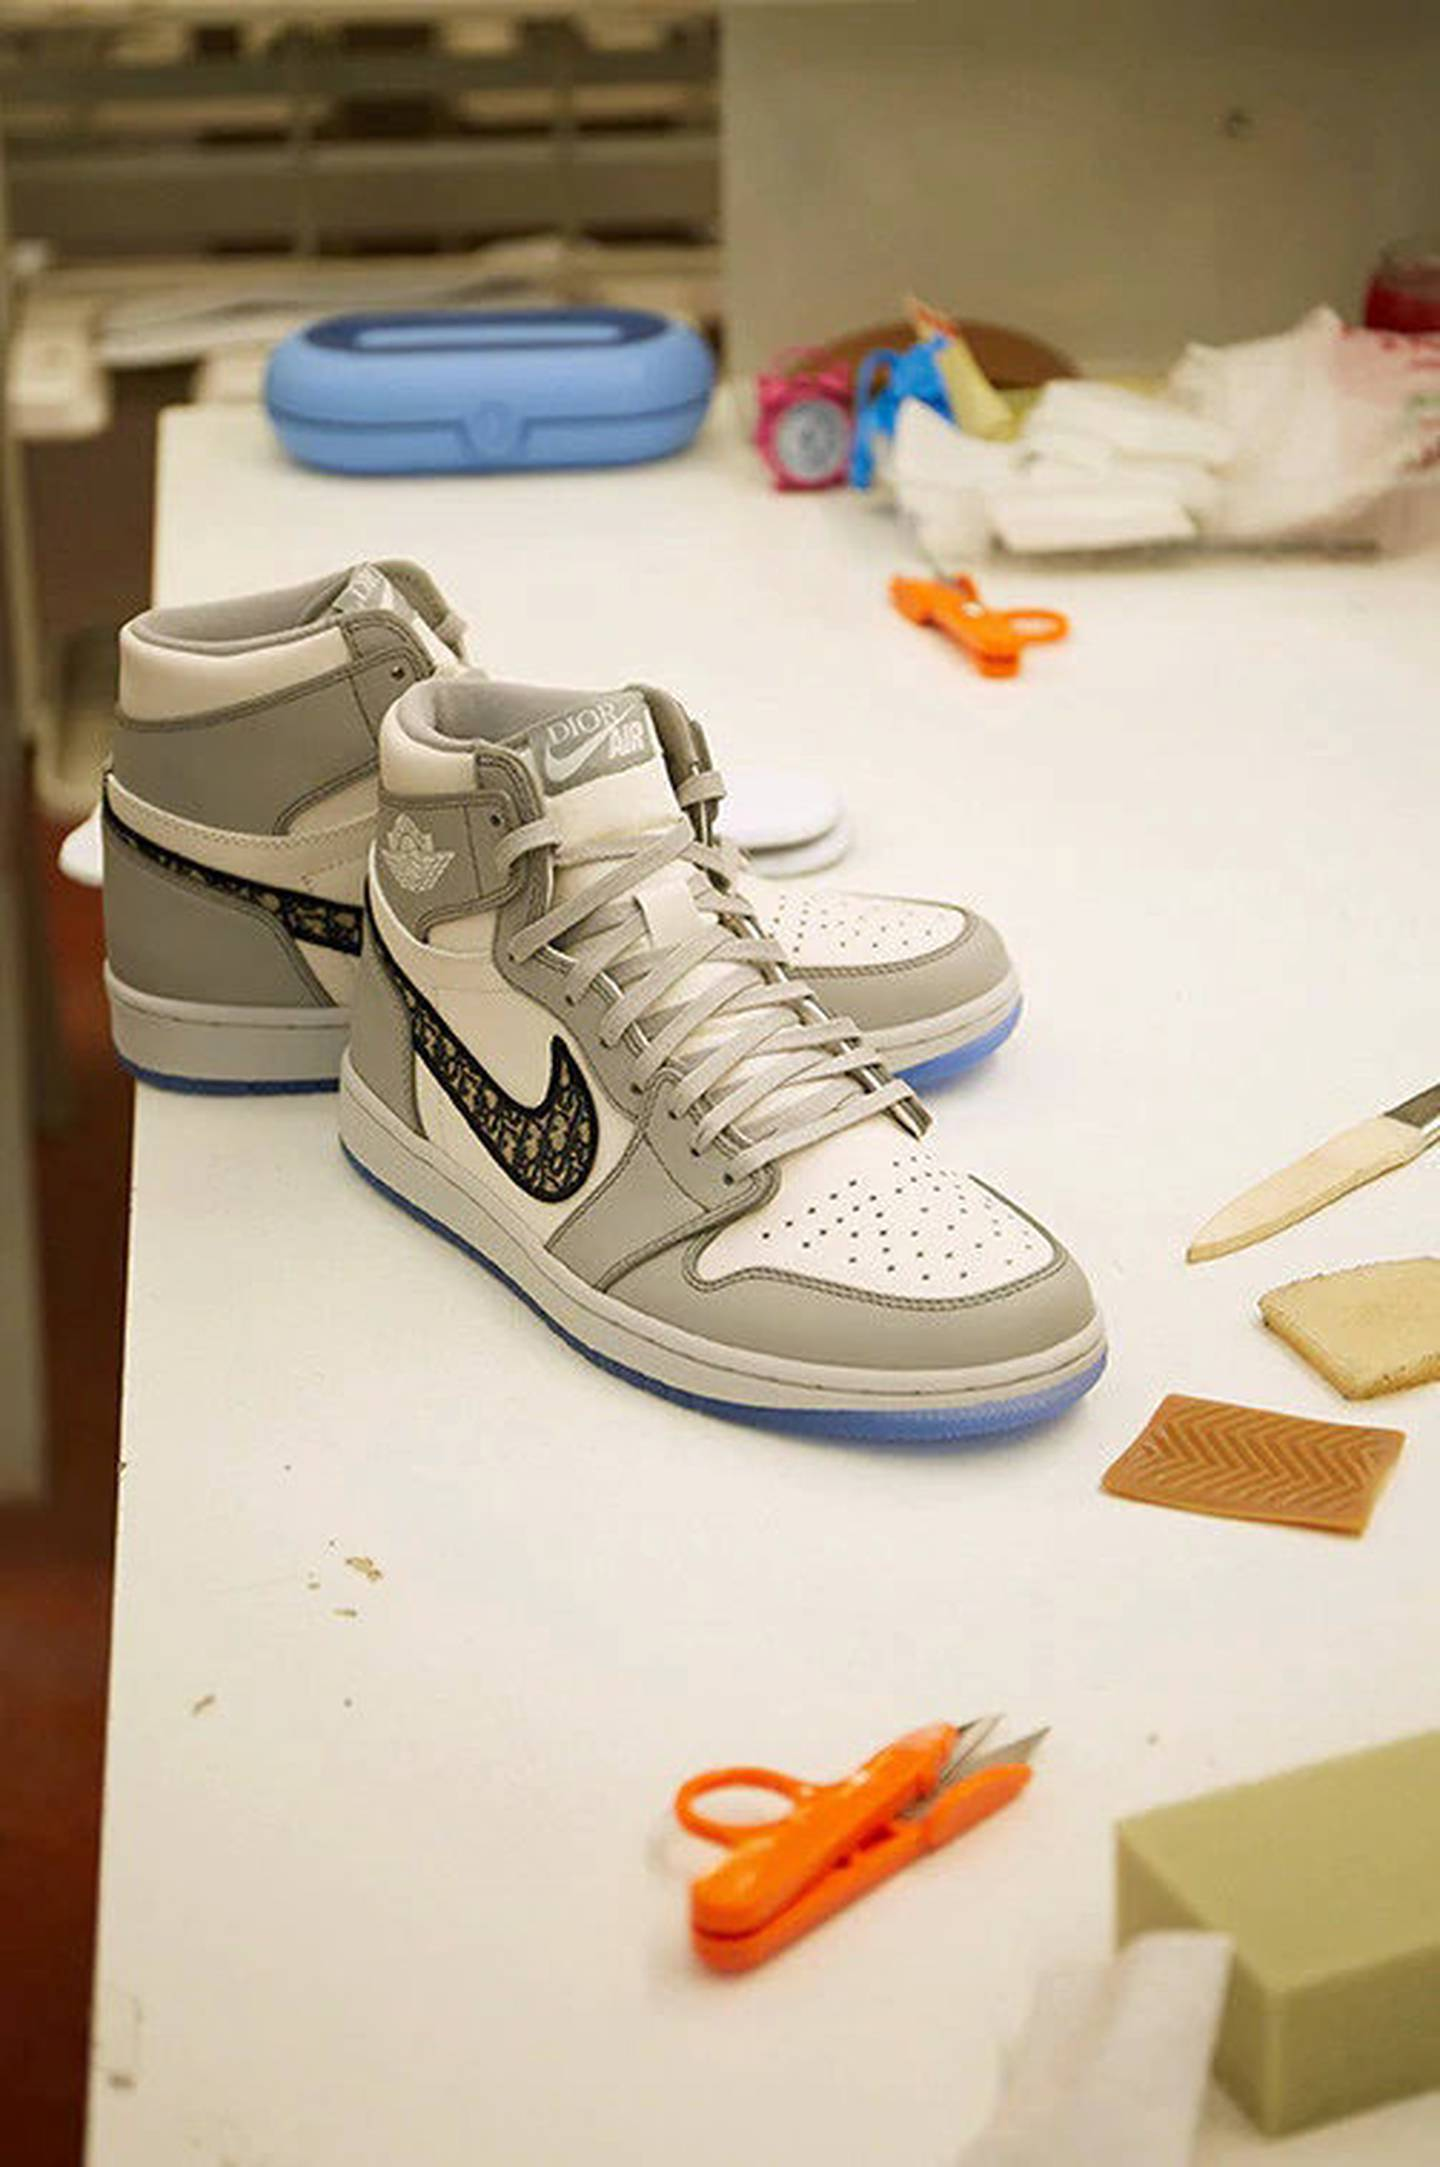 The limited edition Air Jordan 1 OG Dior being made. Courtesy Dior